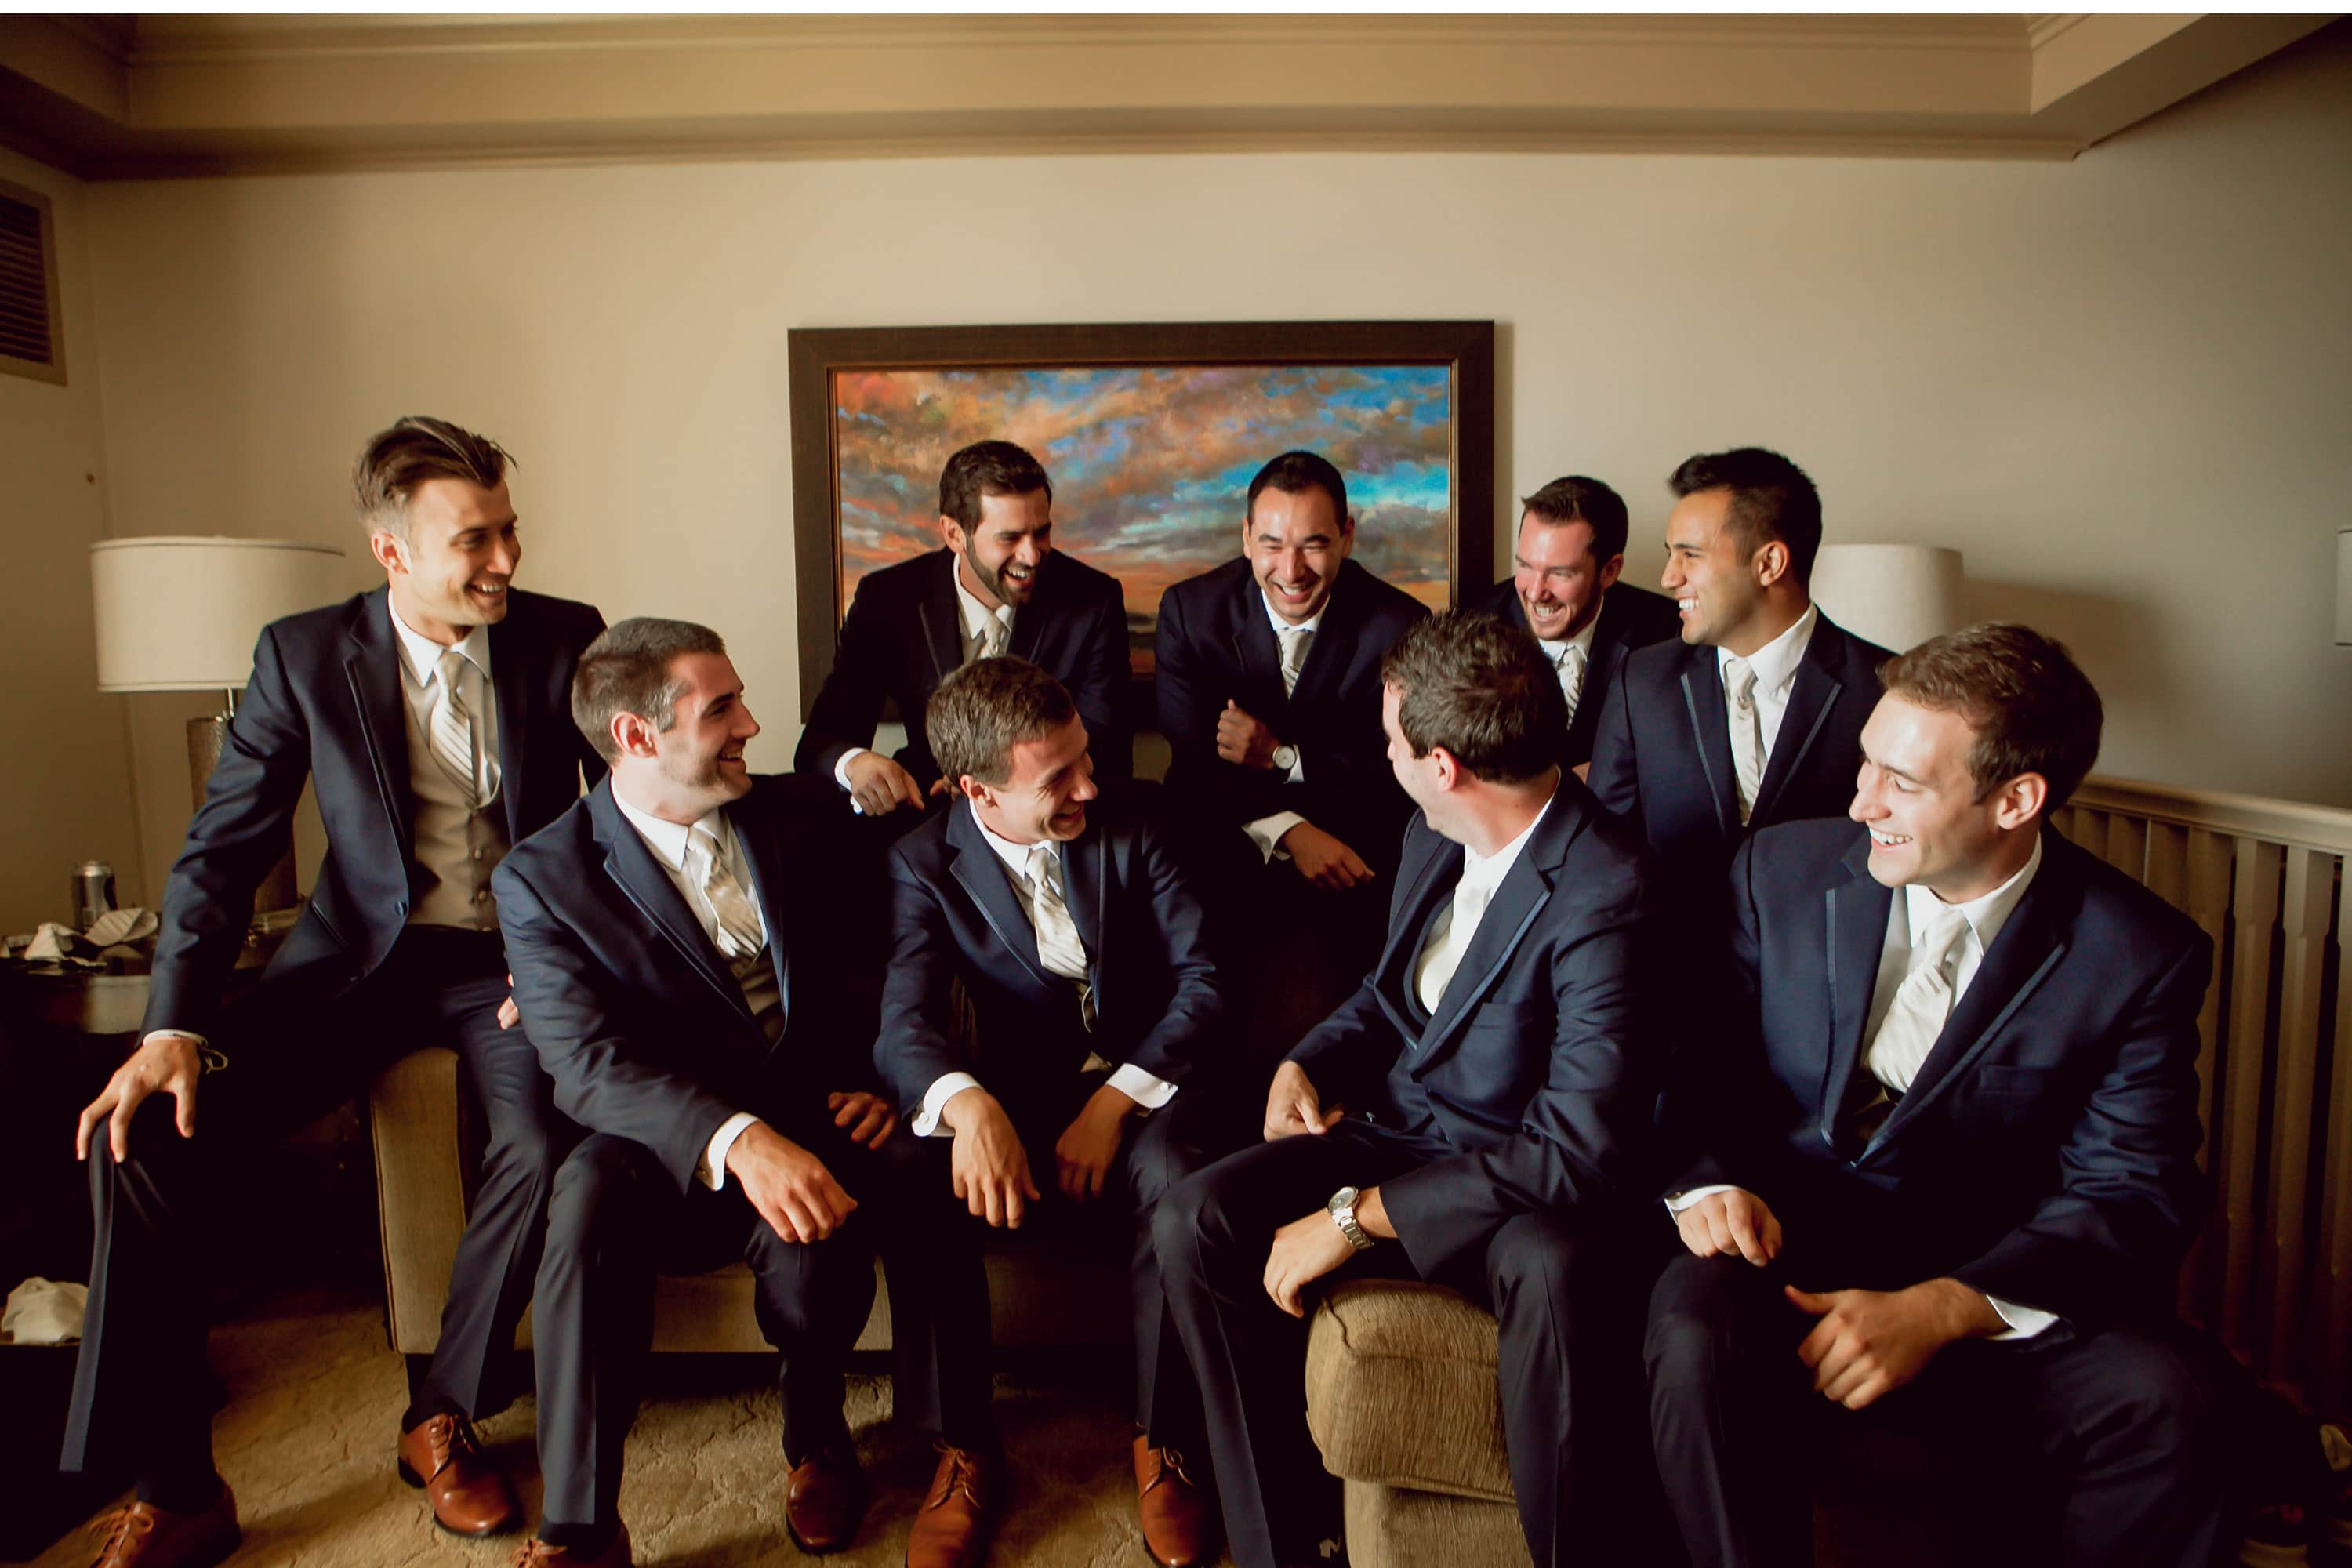 bellwether-wedding-photo-bellingham-photographer-first-look